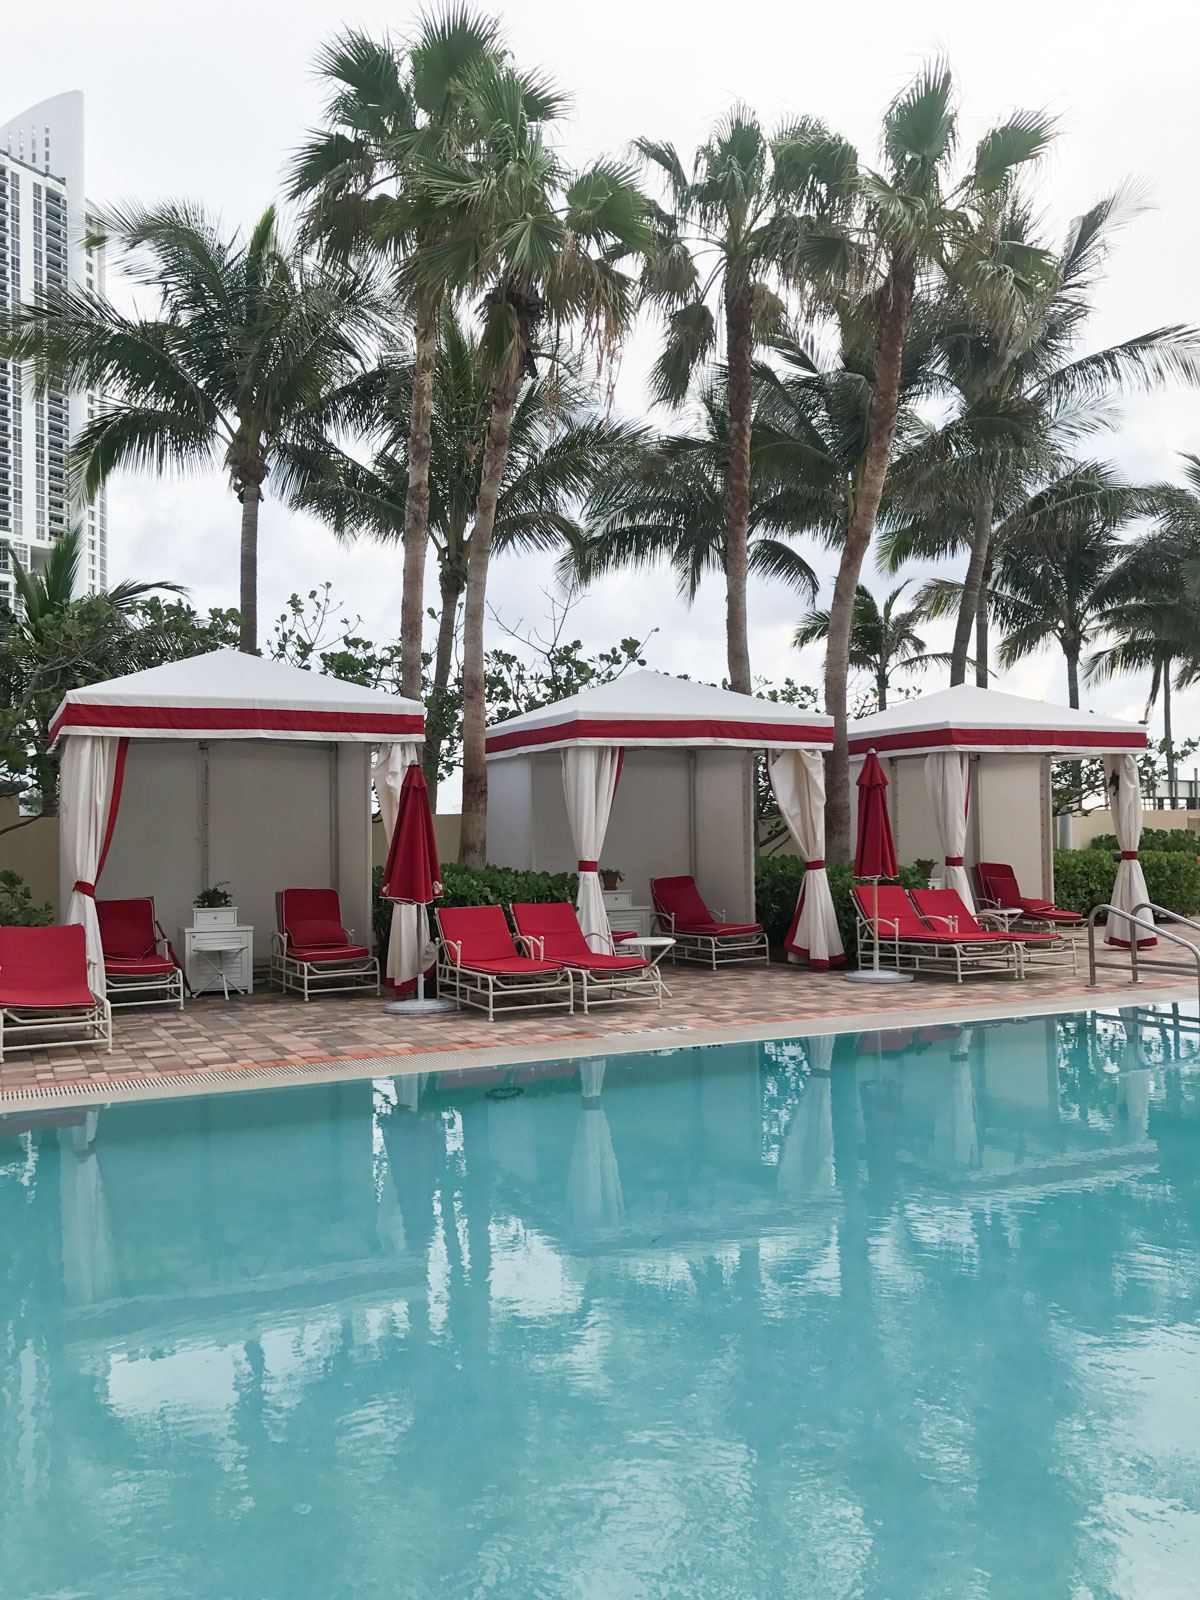 Acqualina Resort Reviews_AddieBell_Best_US_Getaway-8535.jpg